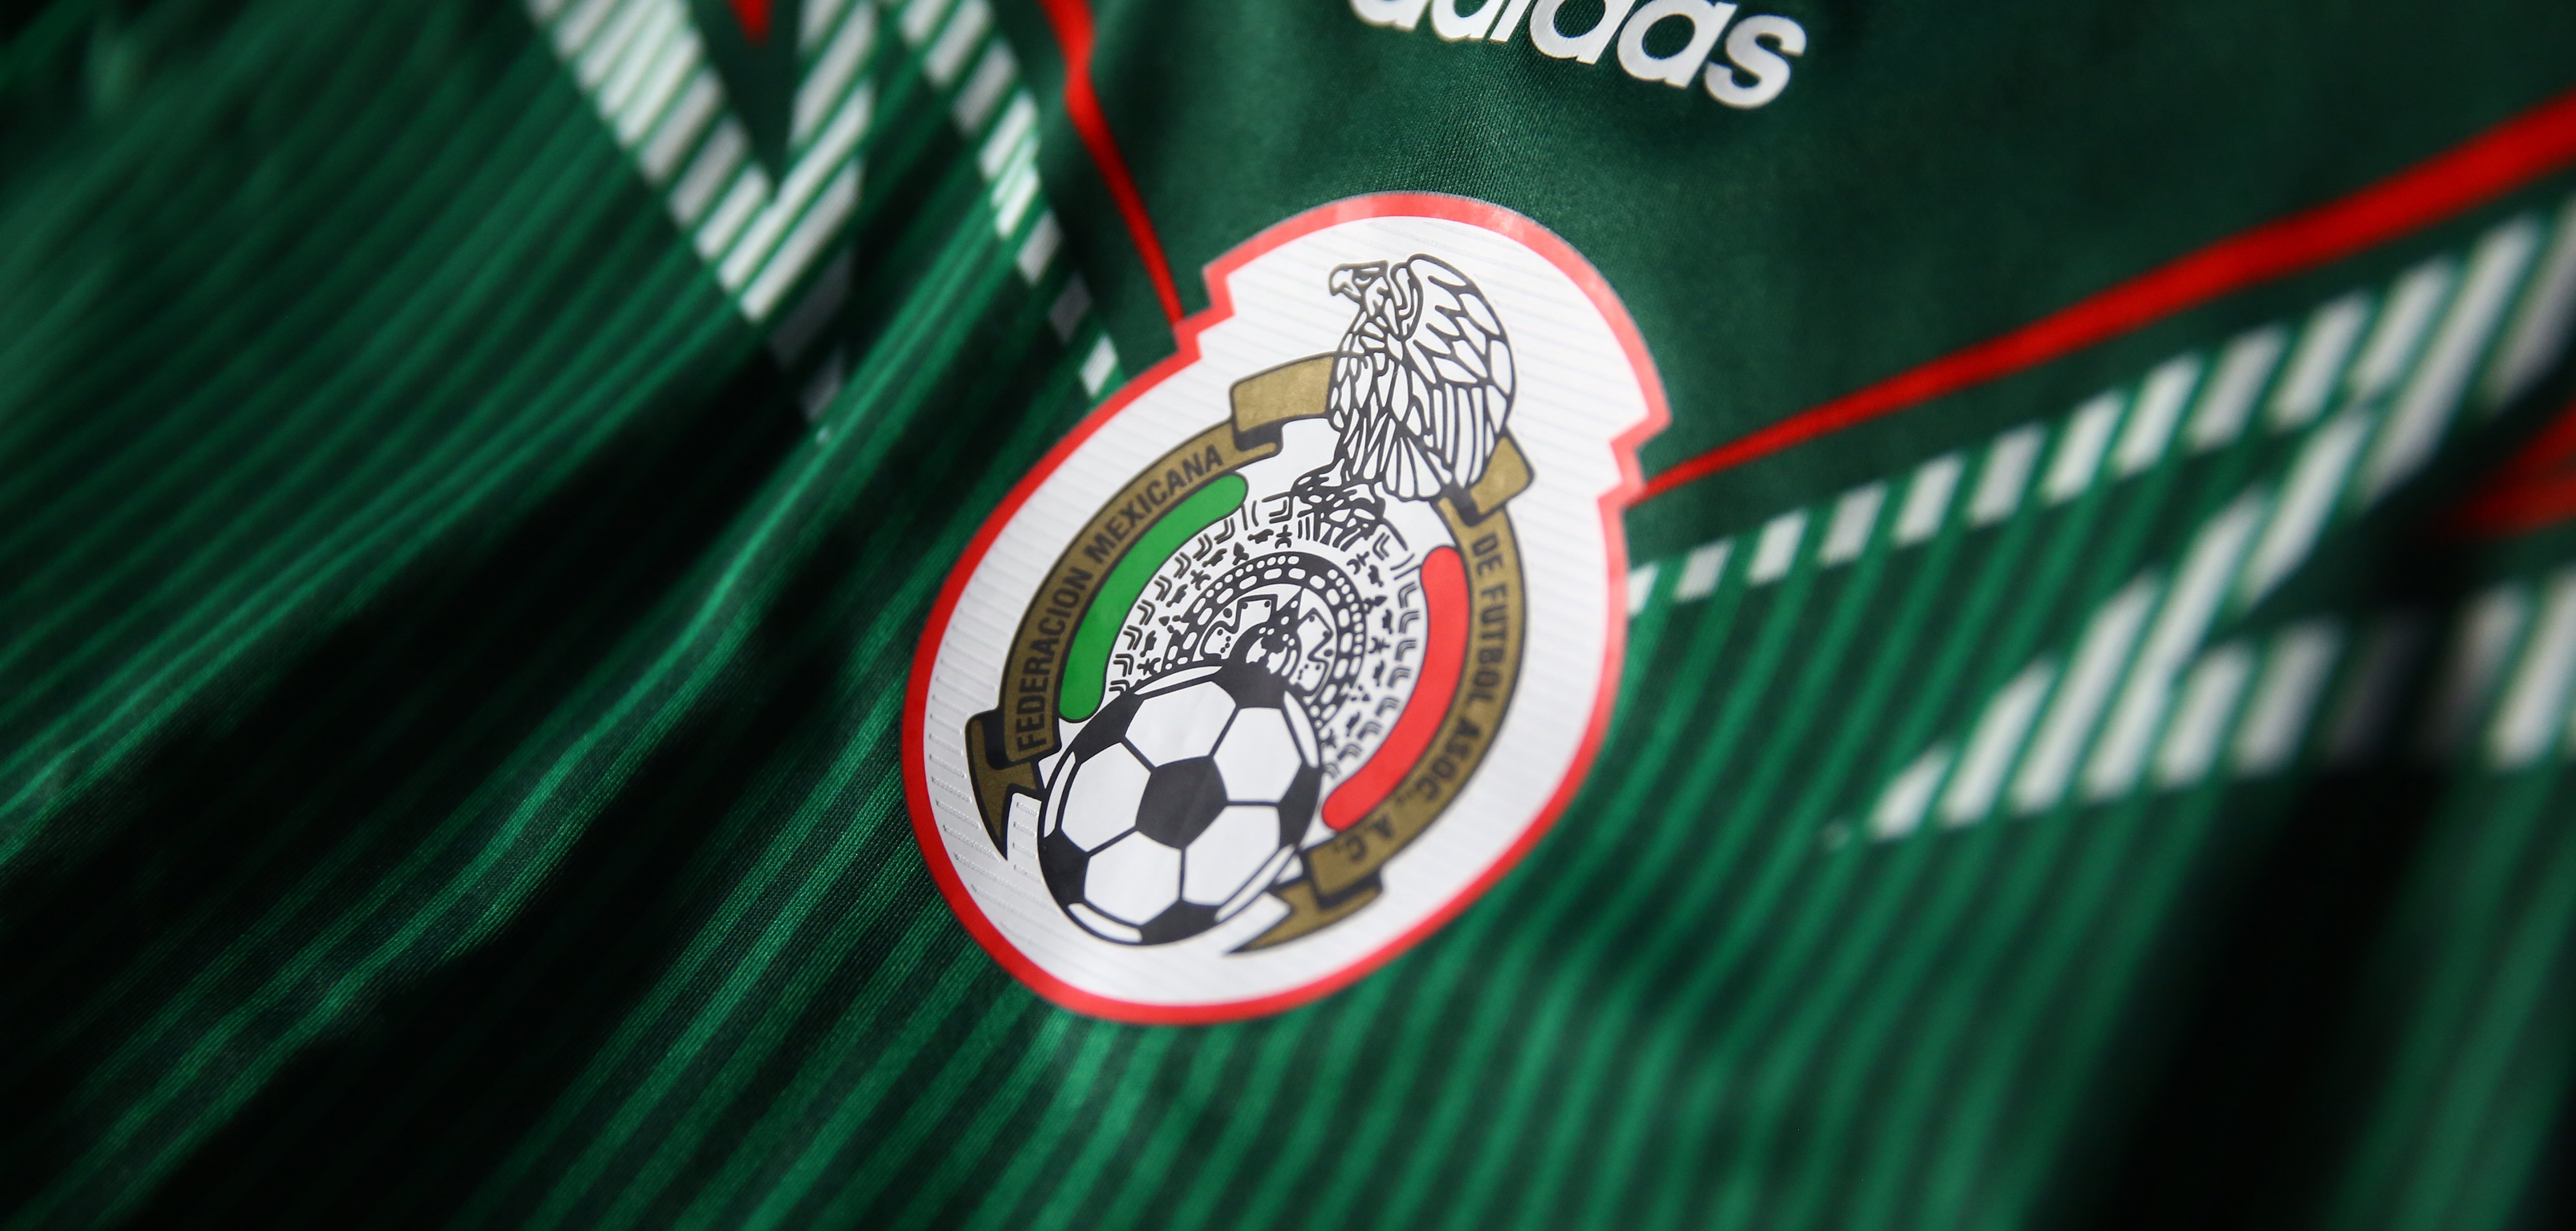 MEXICO soccer 8 wallpaper background 5058x2418